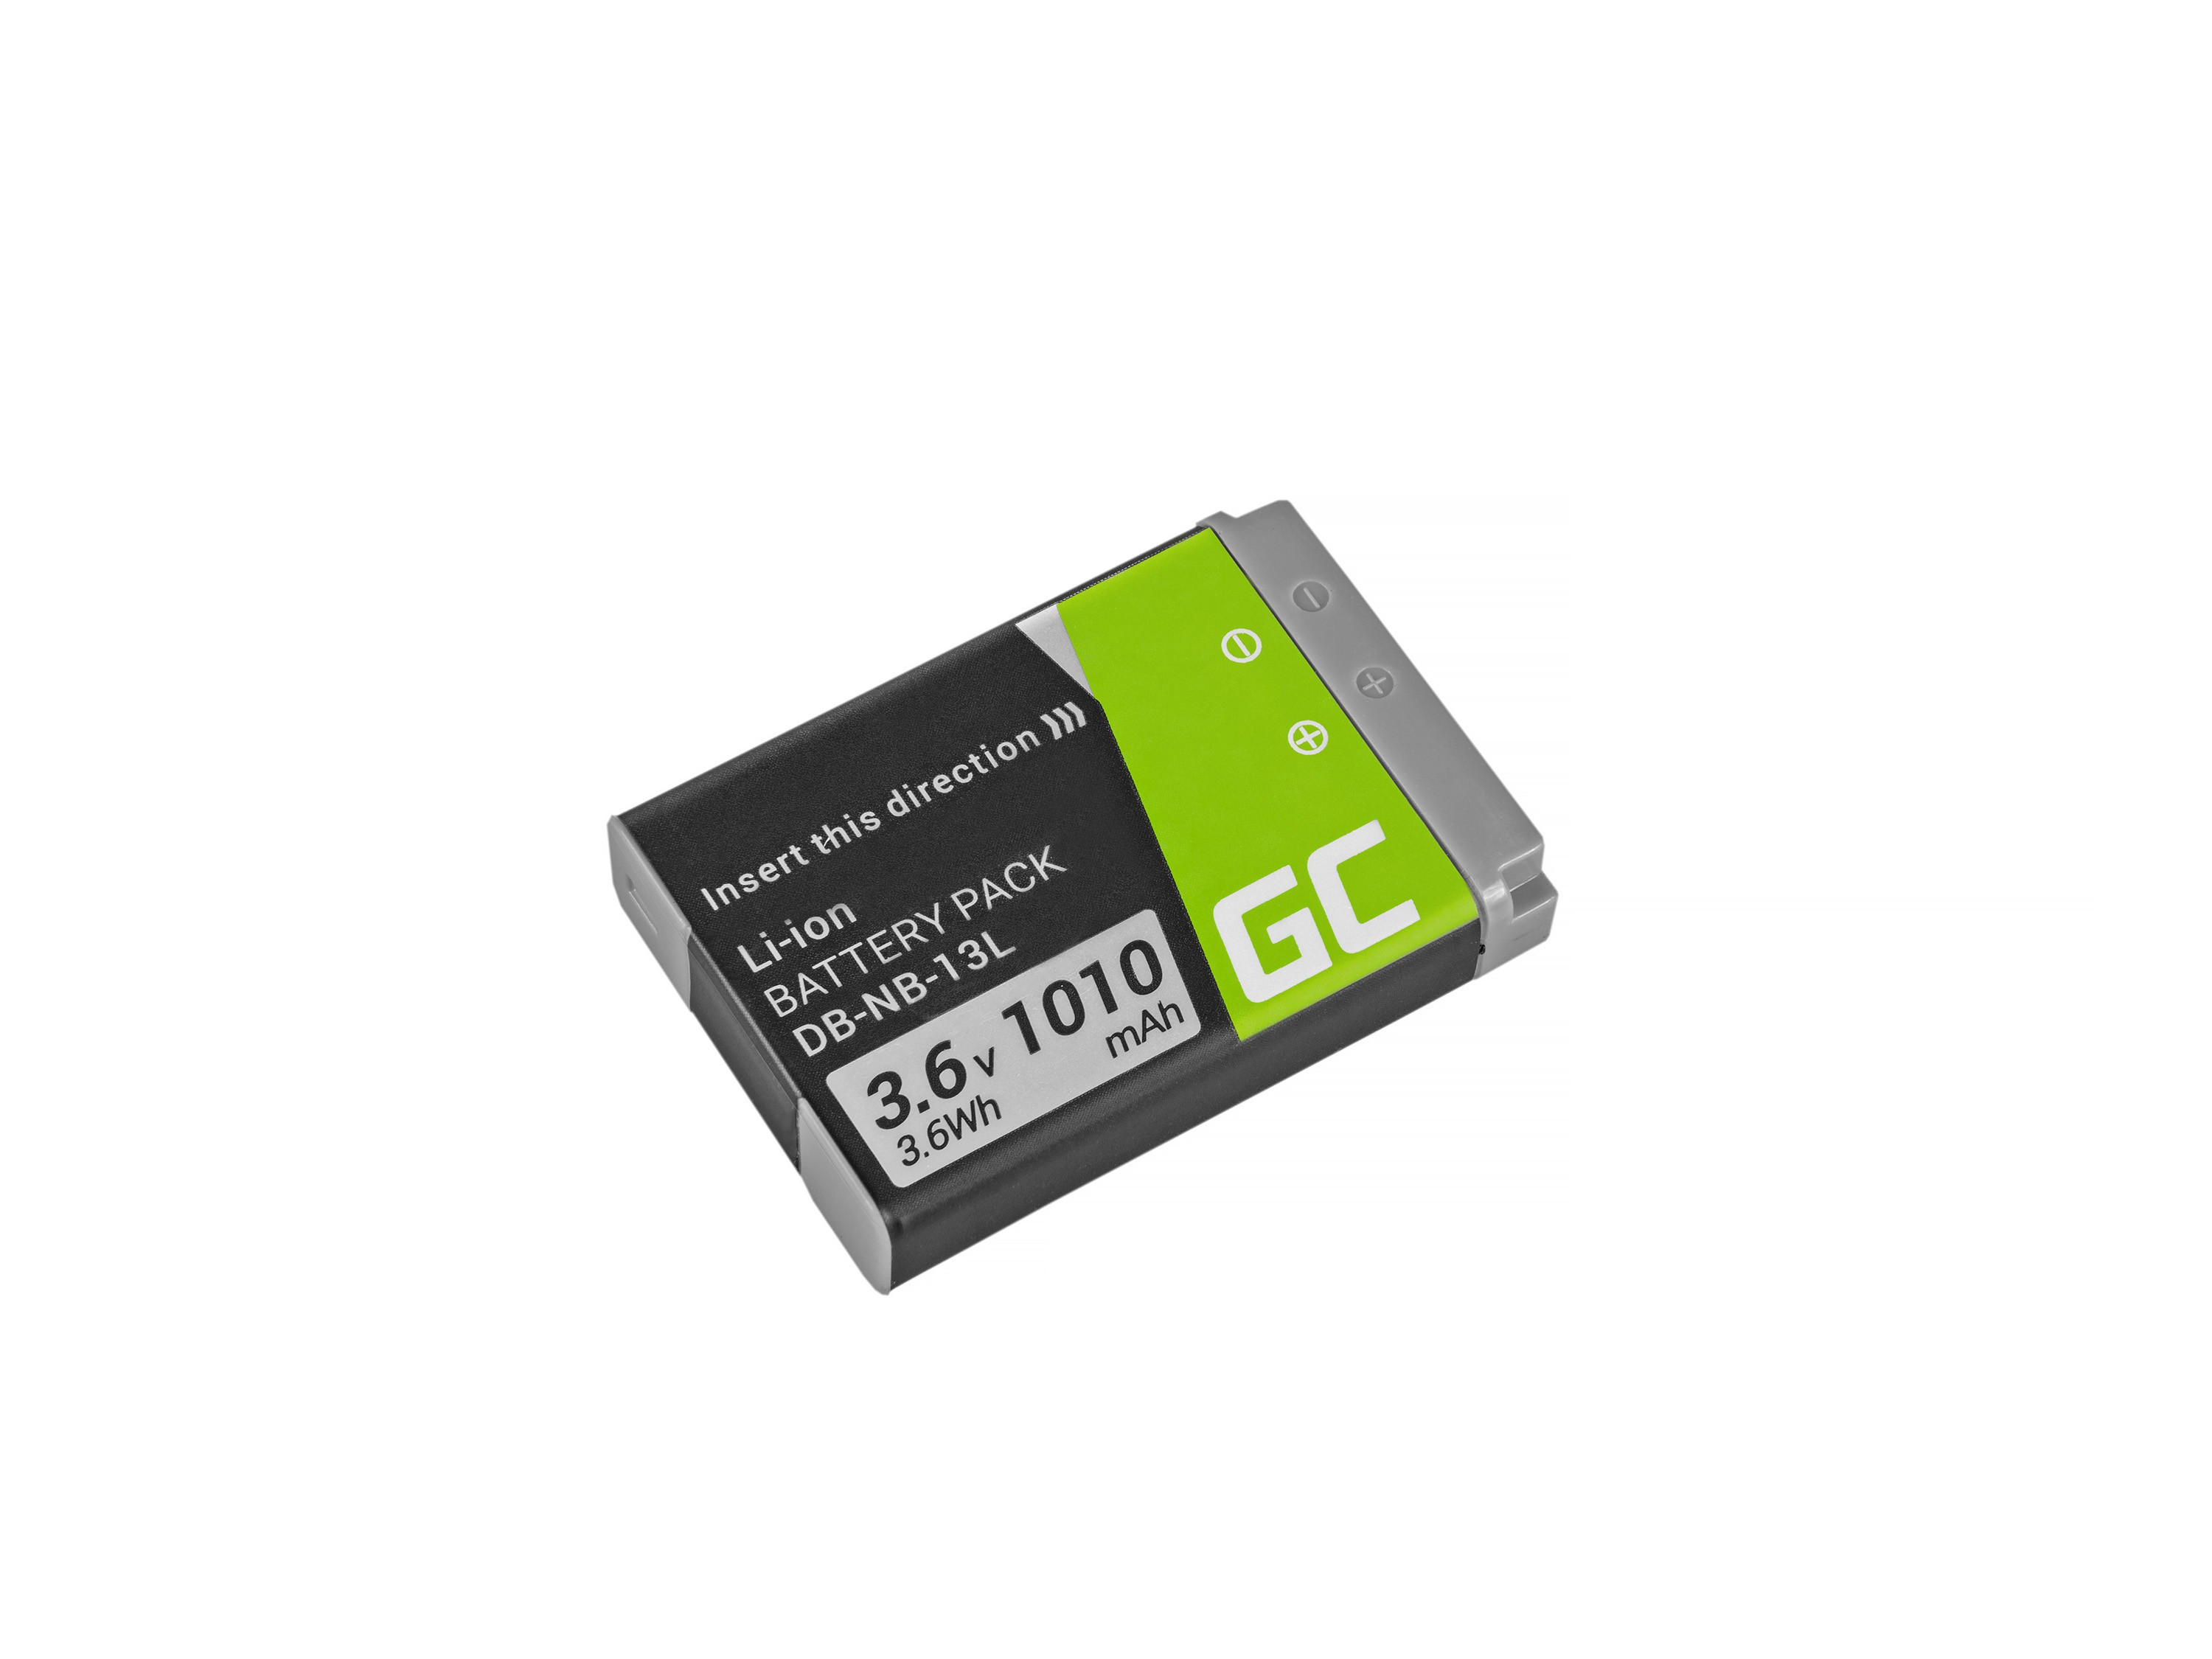 Green Cell NB-13L Baterie pro Canon PowerShot G5 X, G7 X, G7 X Mark II, G9 X, SX620 HS, SX720 HS, SX730 HS 3.6V 1010mAh